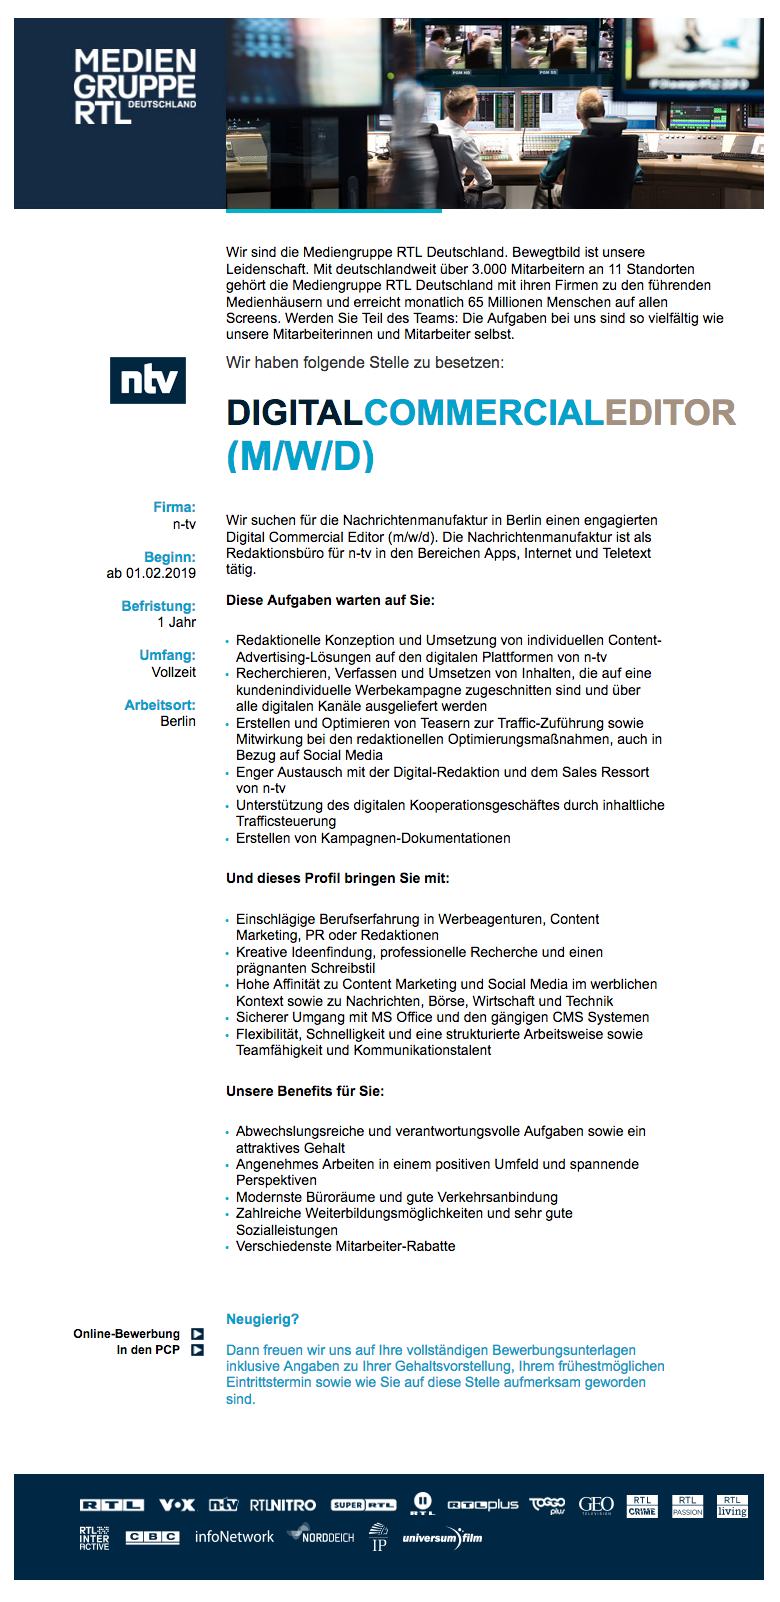 Digital Commercial Editor (m/w/d) (n-tv)